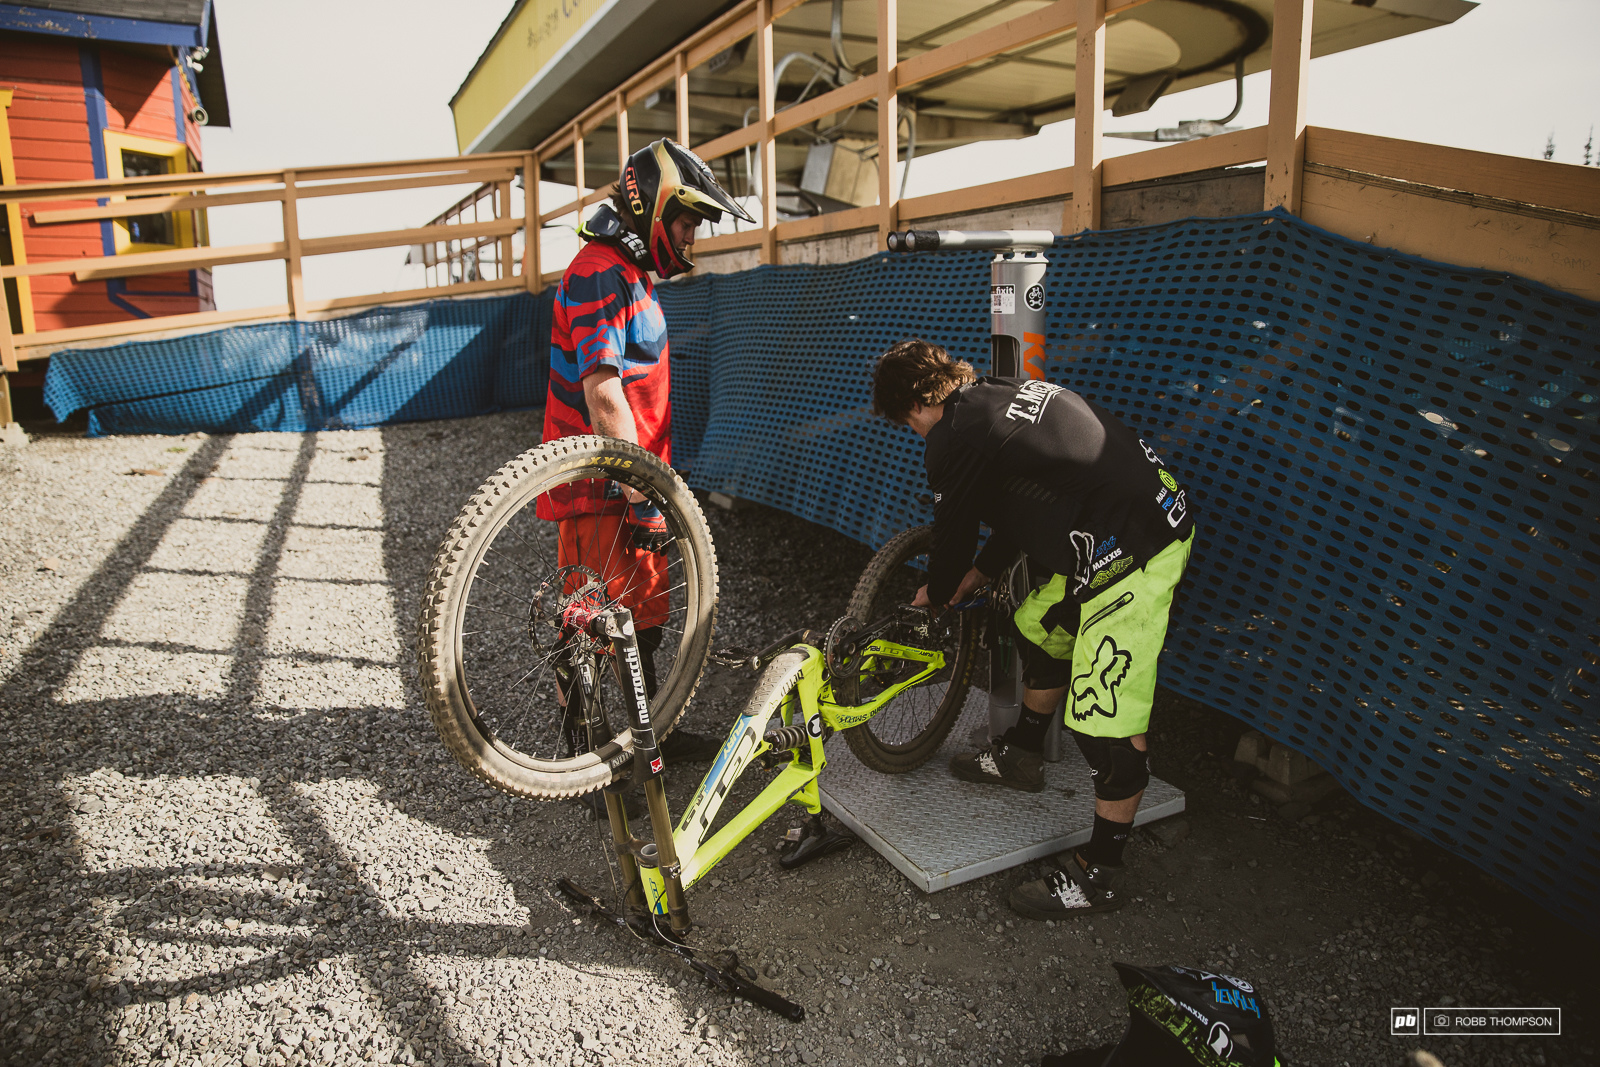 Meanwhile Tyler and Noah make use of the handy repair stand at the top of the mountain.